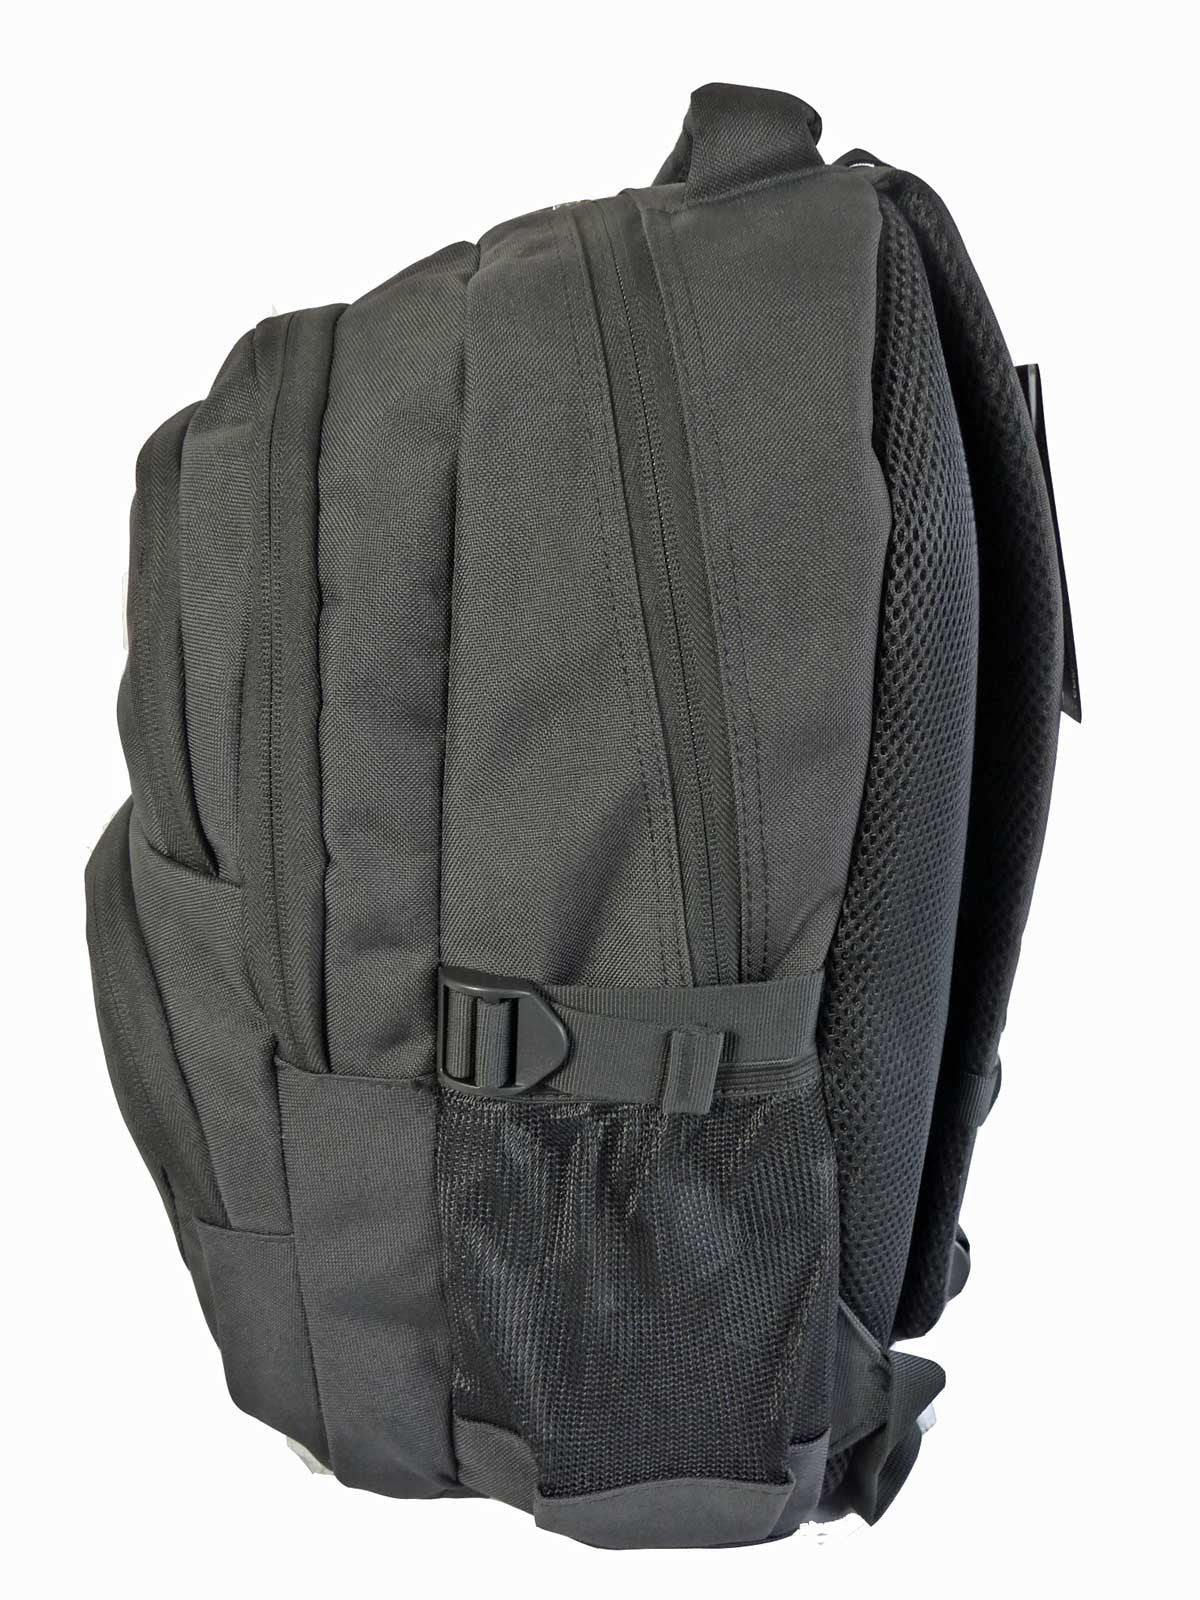 Laptop Macbook Backpack Rucksack Bag RL43K Side S View